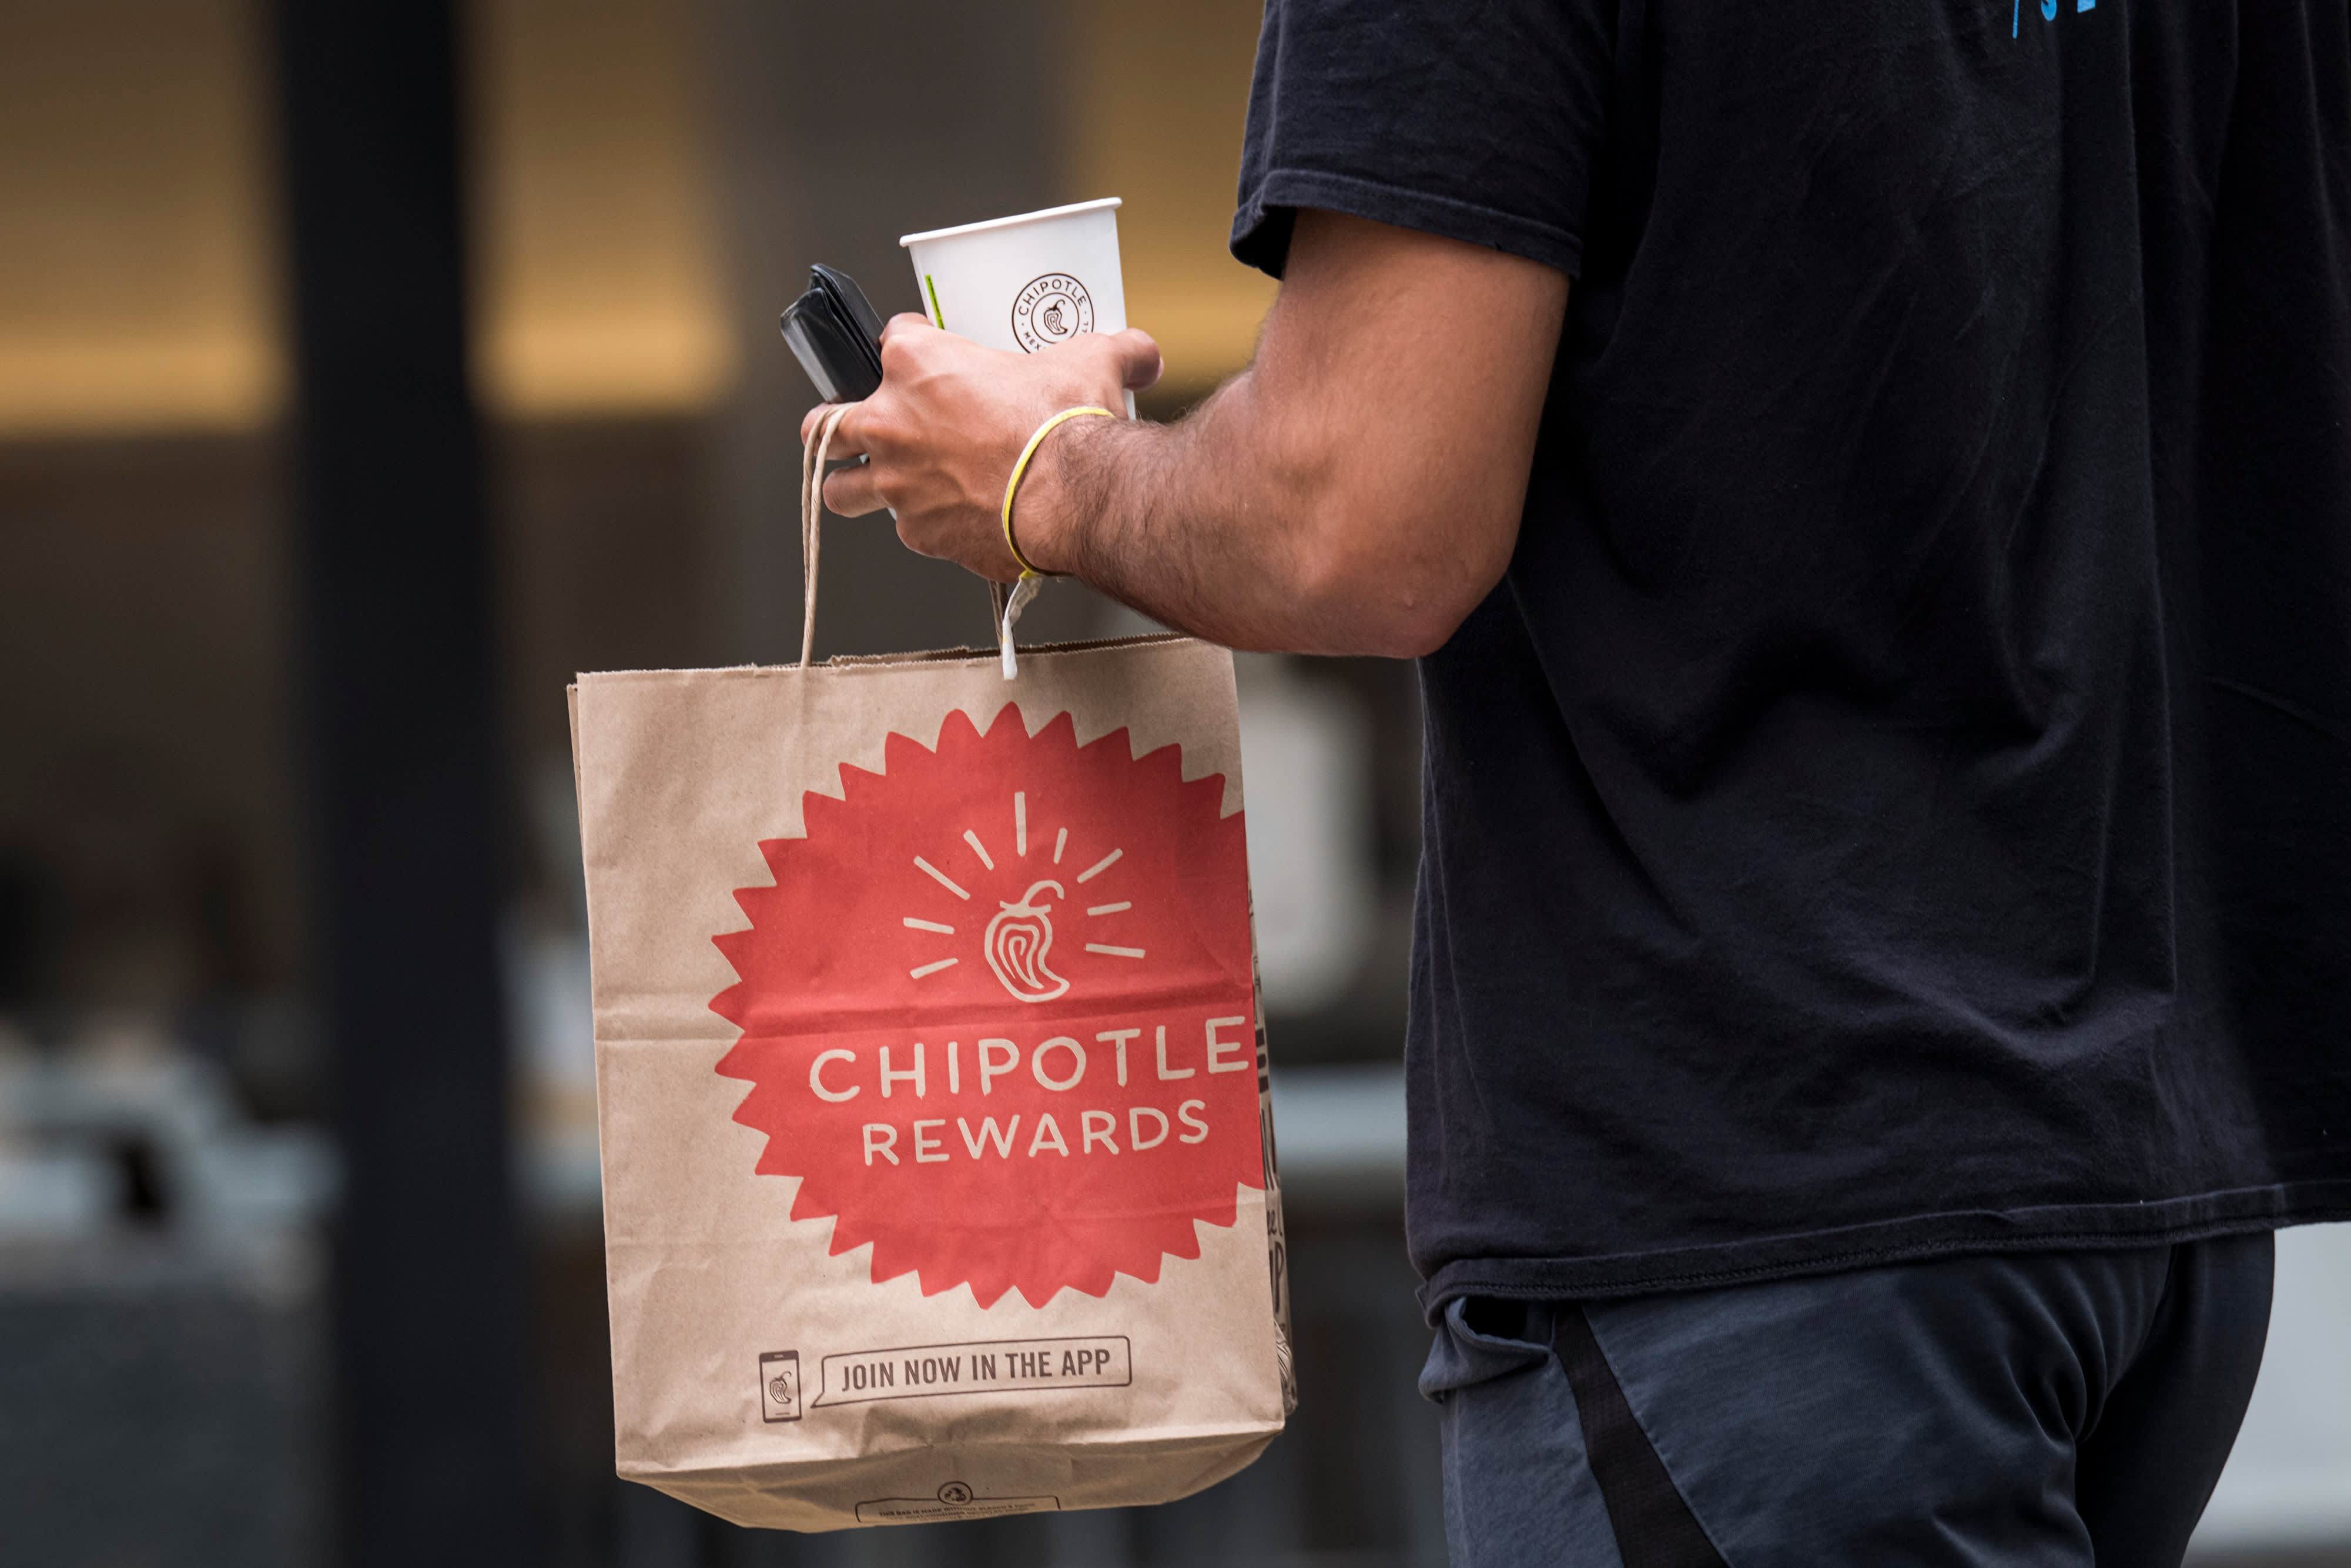 Jim Cramer reacts to Chipotle big earnings beat: 'Chipotle delivered'